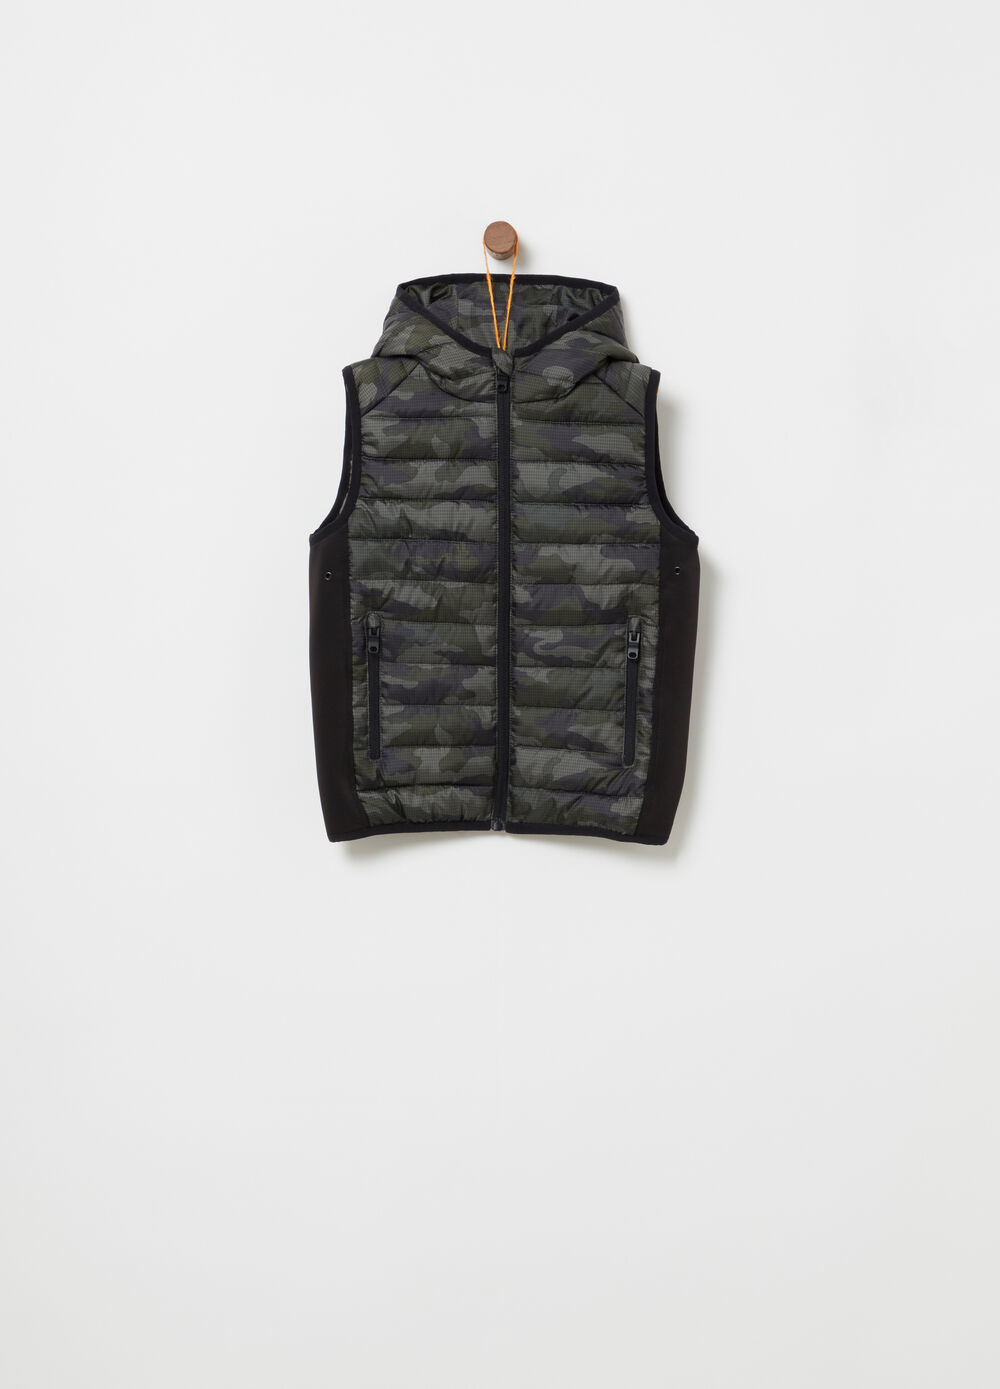 Nylon gilet with camouflage neoprene inserts